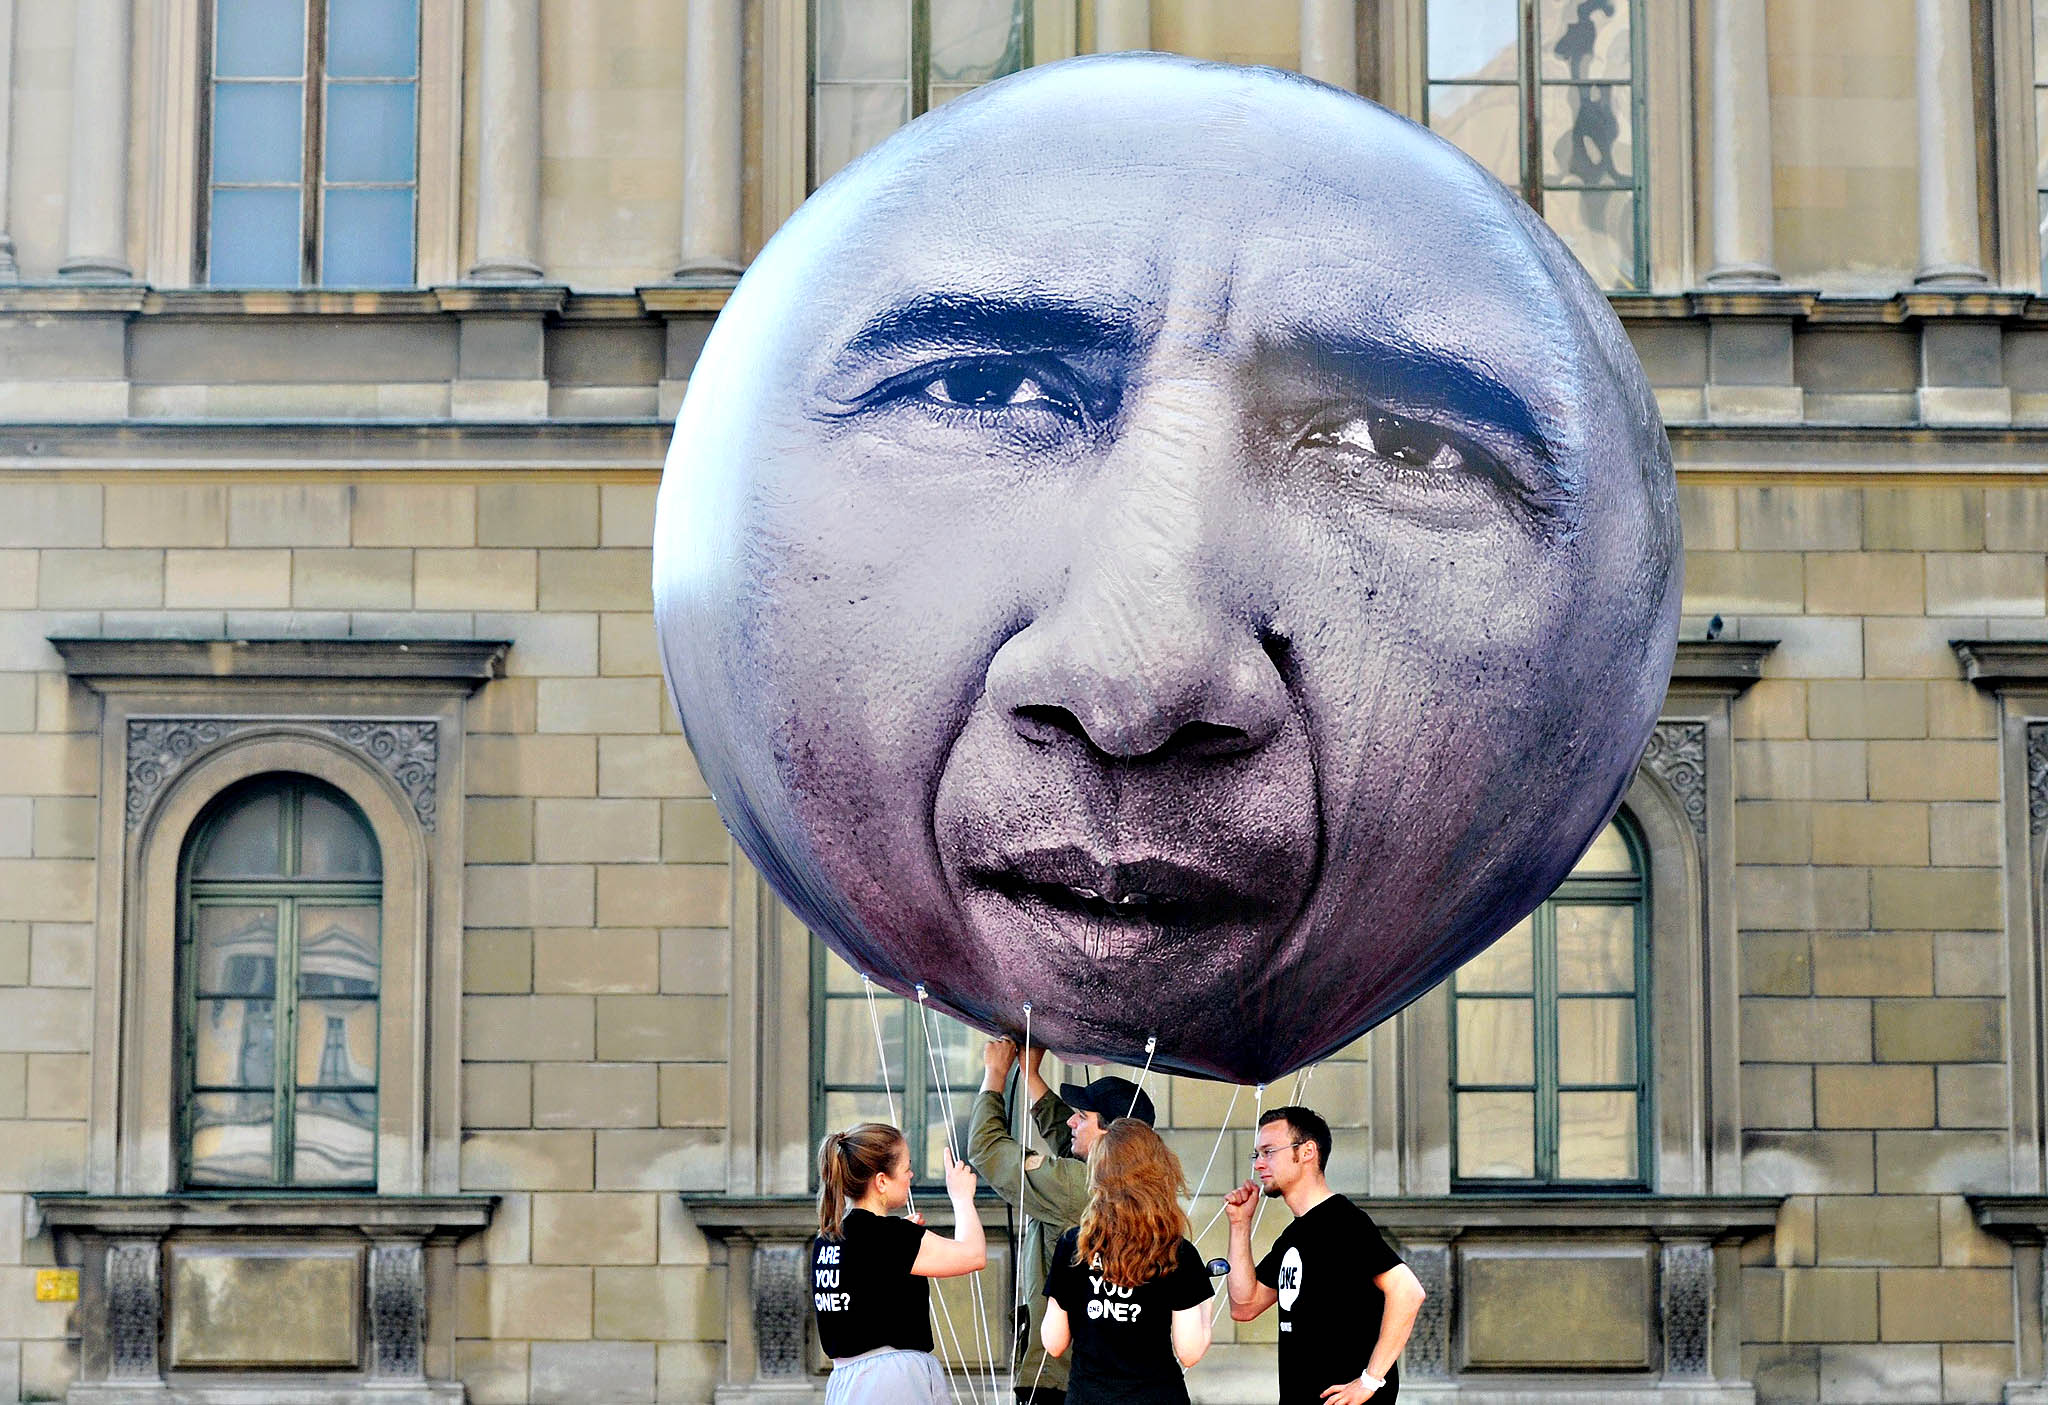 Helpers hold a balloon of the developmental advocacy and campaigning organisation 'ONE' depicting US President Barack Obama while it is filled with air on the Odeonsplatz in Munich, Germany, 05 June 2015. State and government leaders of the G7 countries are meeting on 07 and 08 June 2015 in Schloss Elmau near Garmisch-Partenkirchen